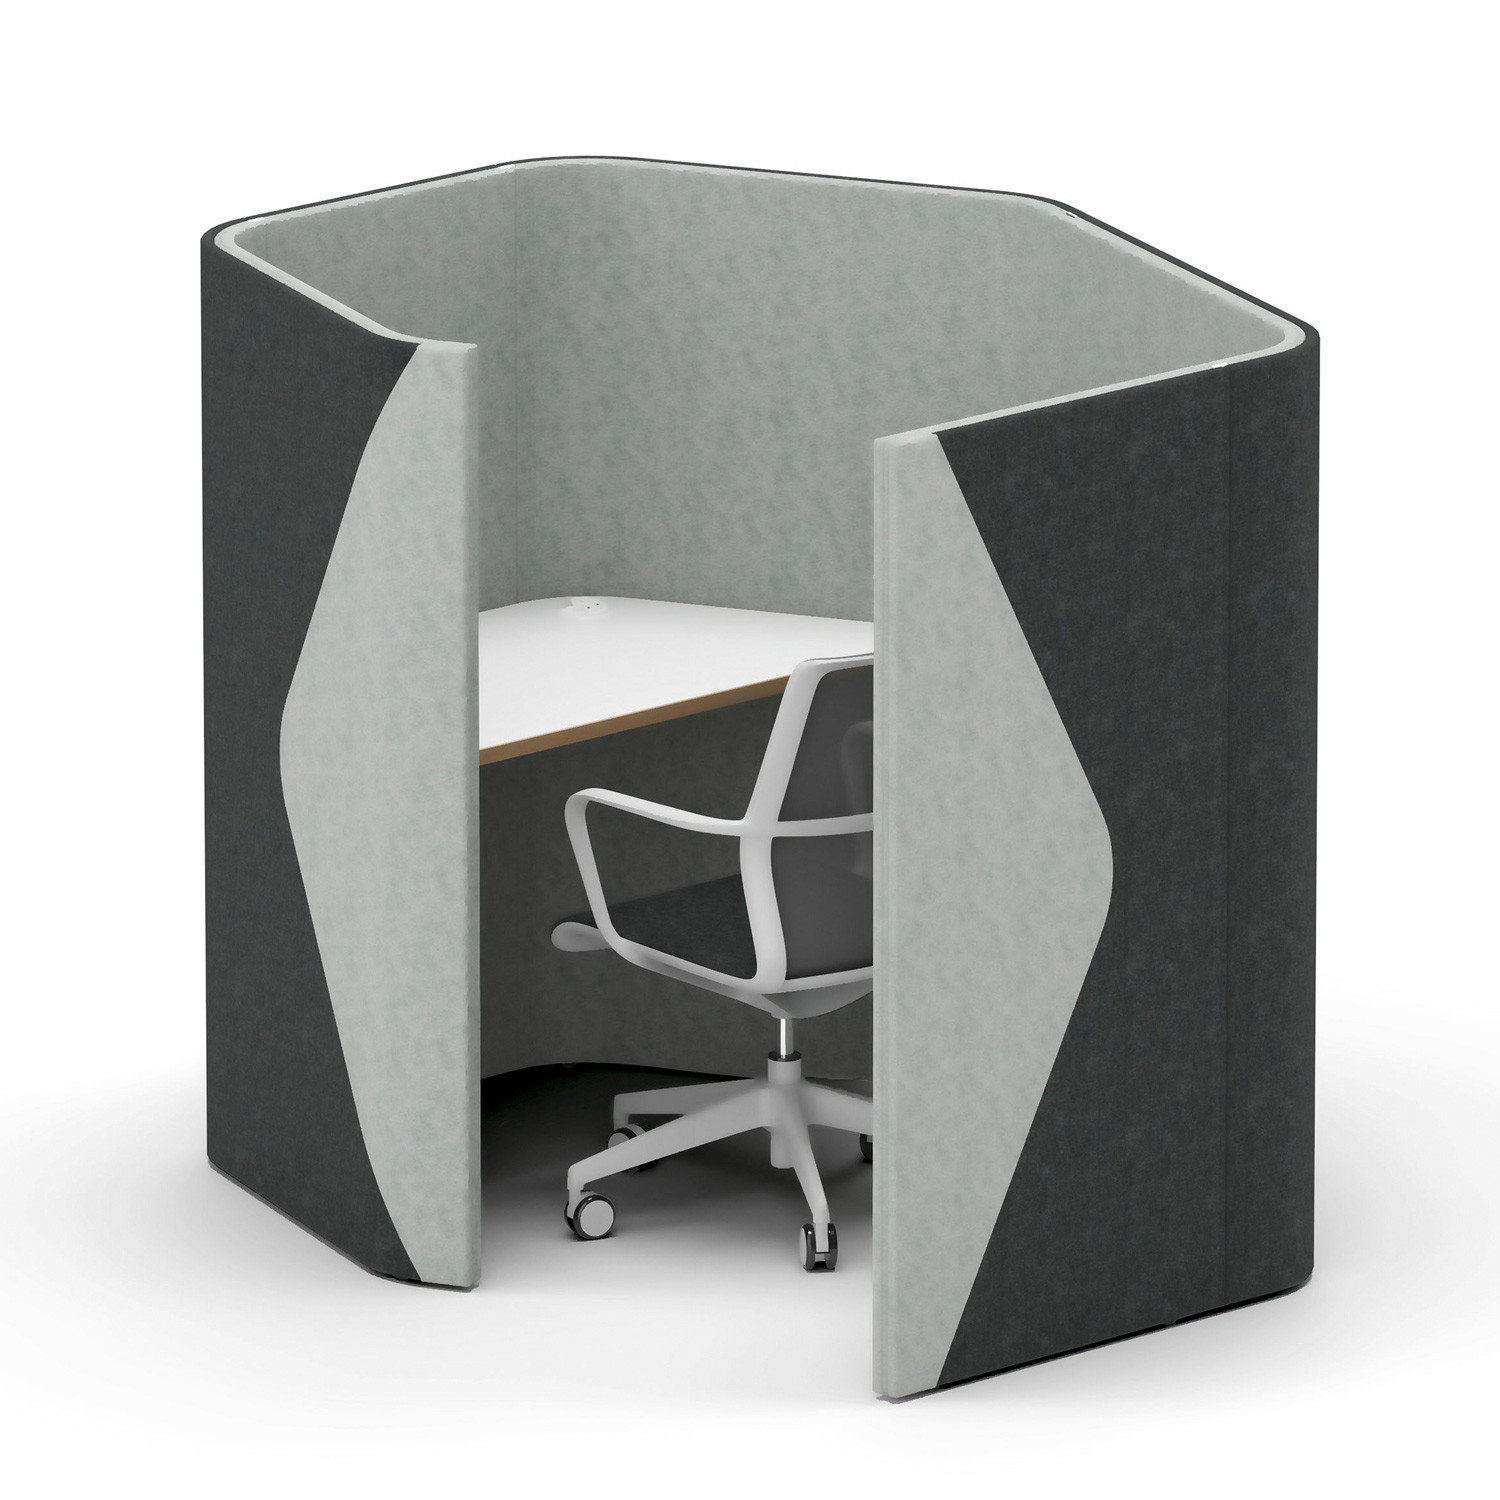 Haven Solo Work Pod